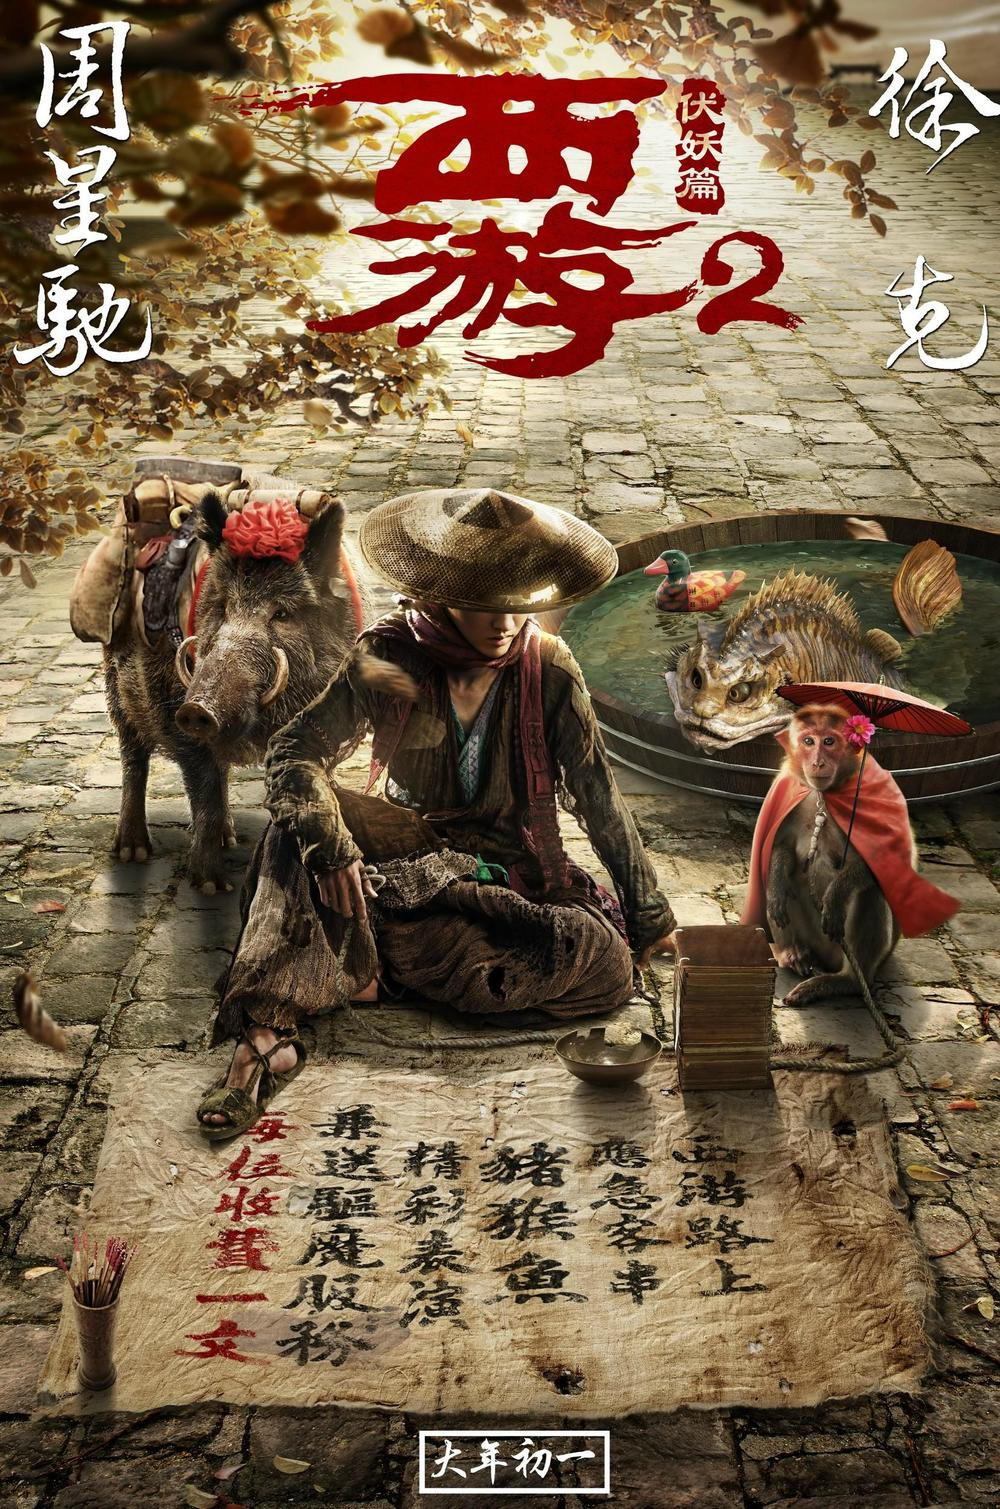 西遊伏妖篇  Journey to the West: Demon Chapter